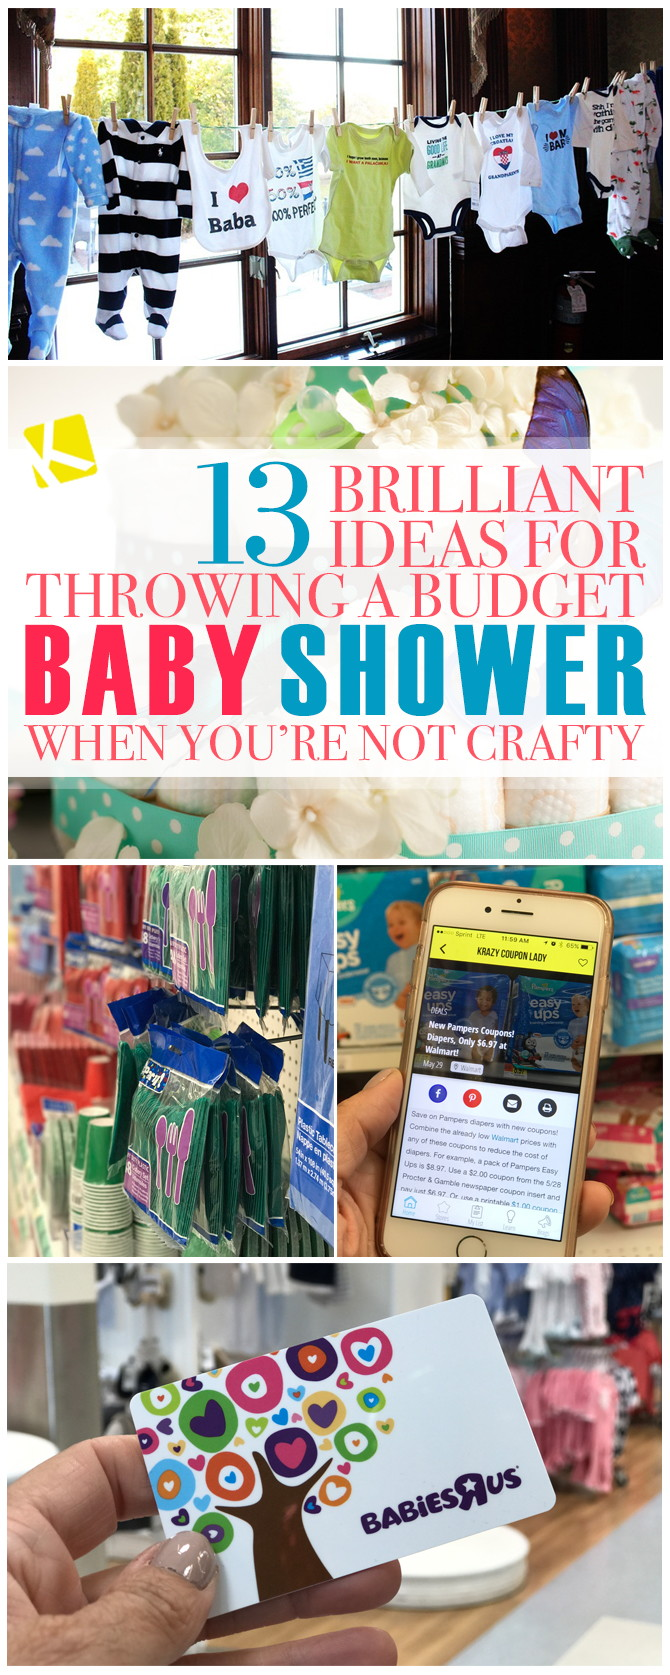 12 brilliant ideas for throwing a budget baby shower when